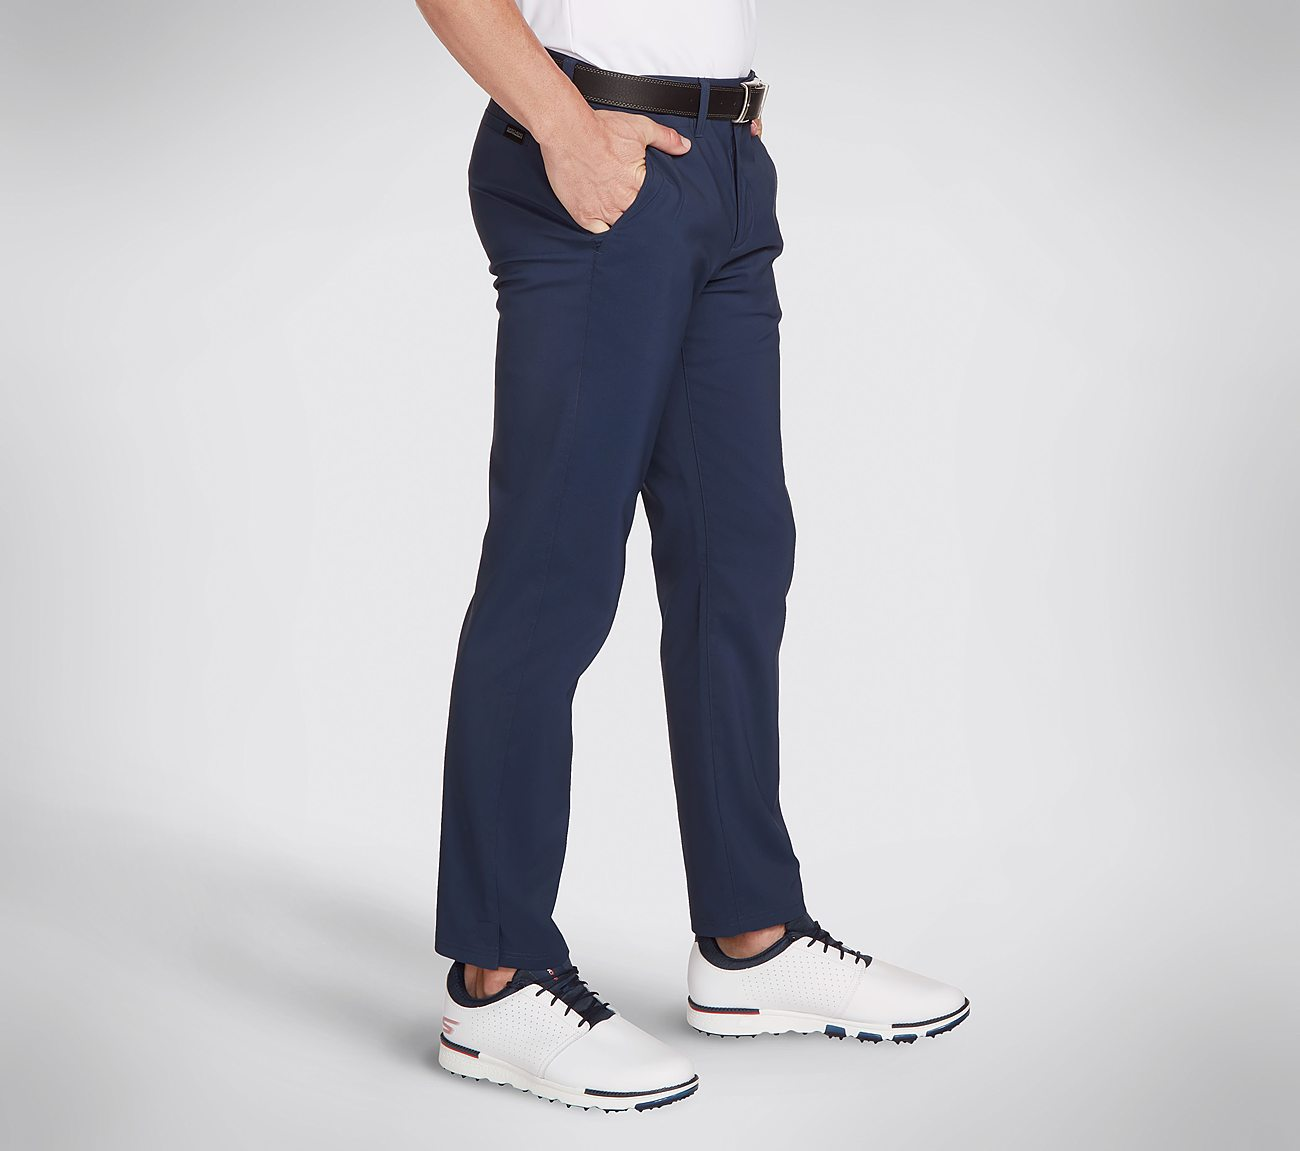 Skechers GO GOLF Eagle on 10 Pant